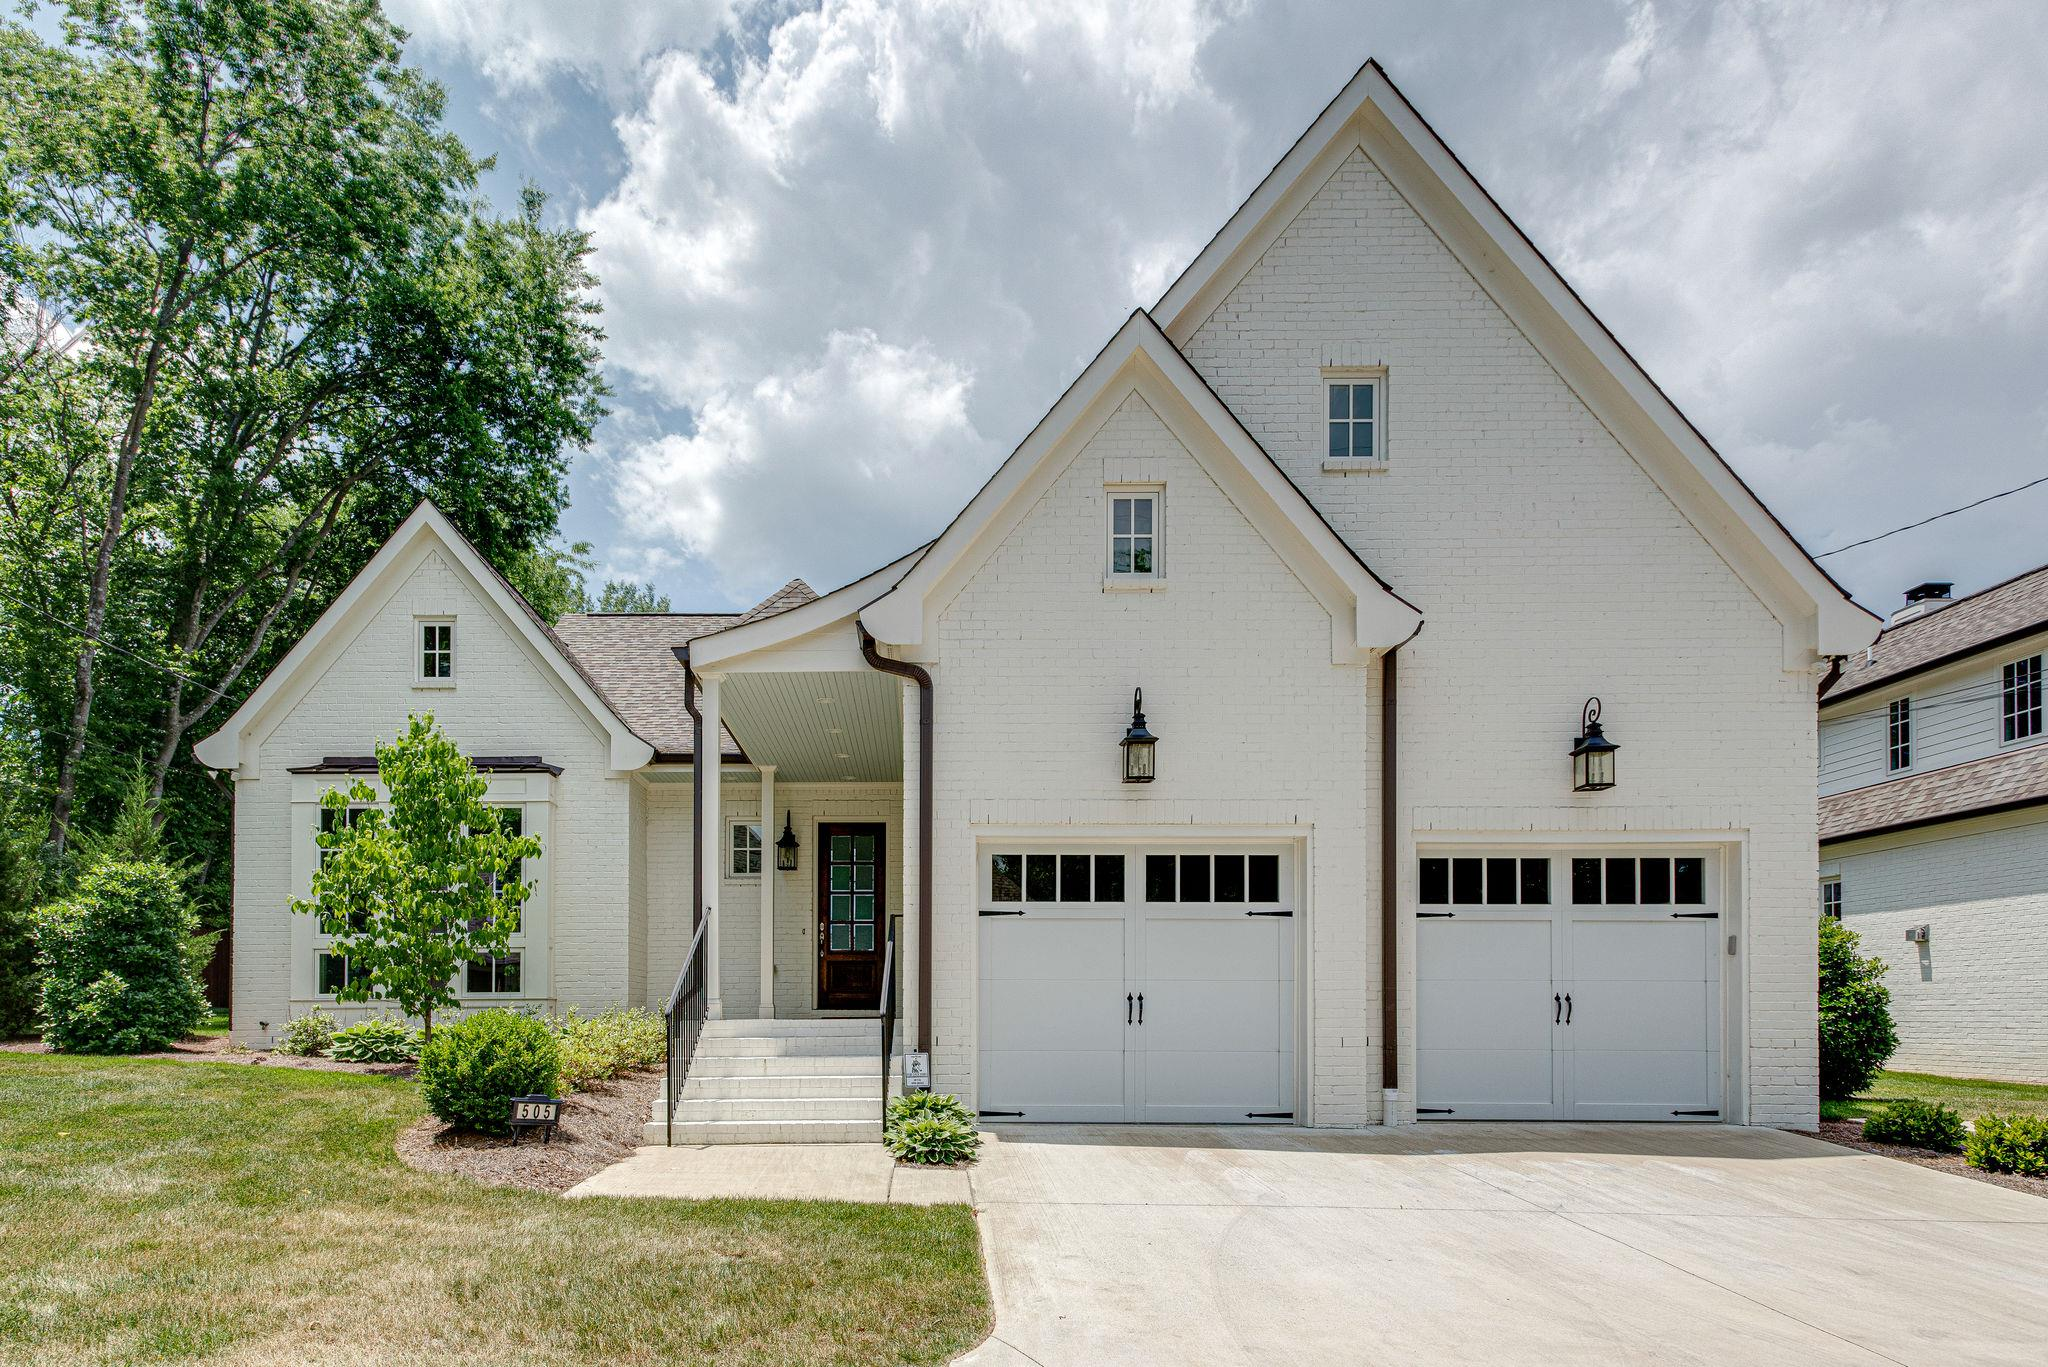 505 Tyne Ct, Belle Meade, Tennessee